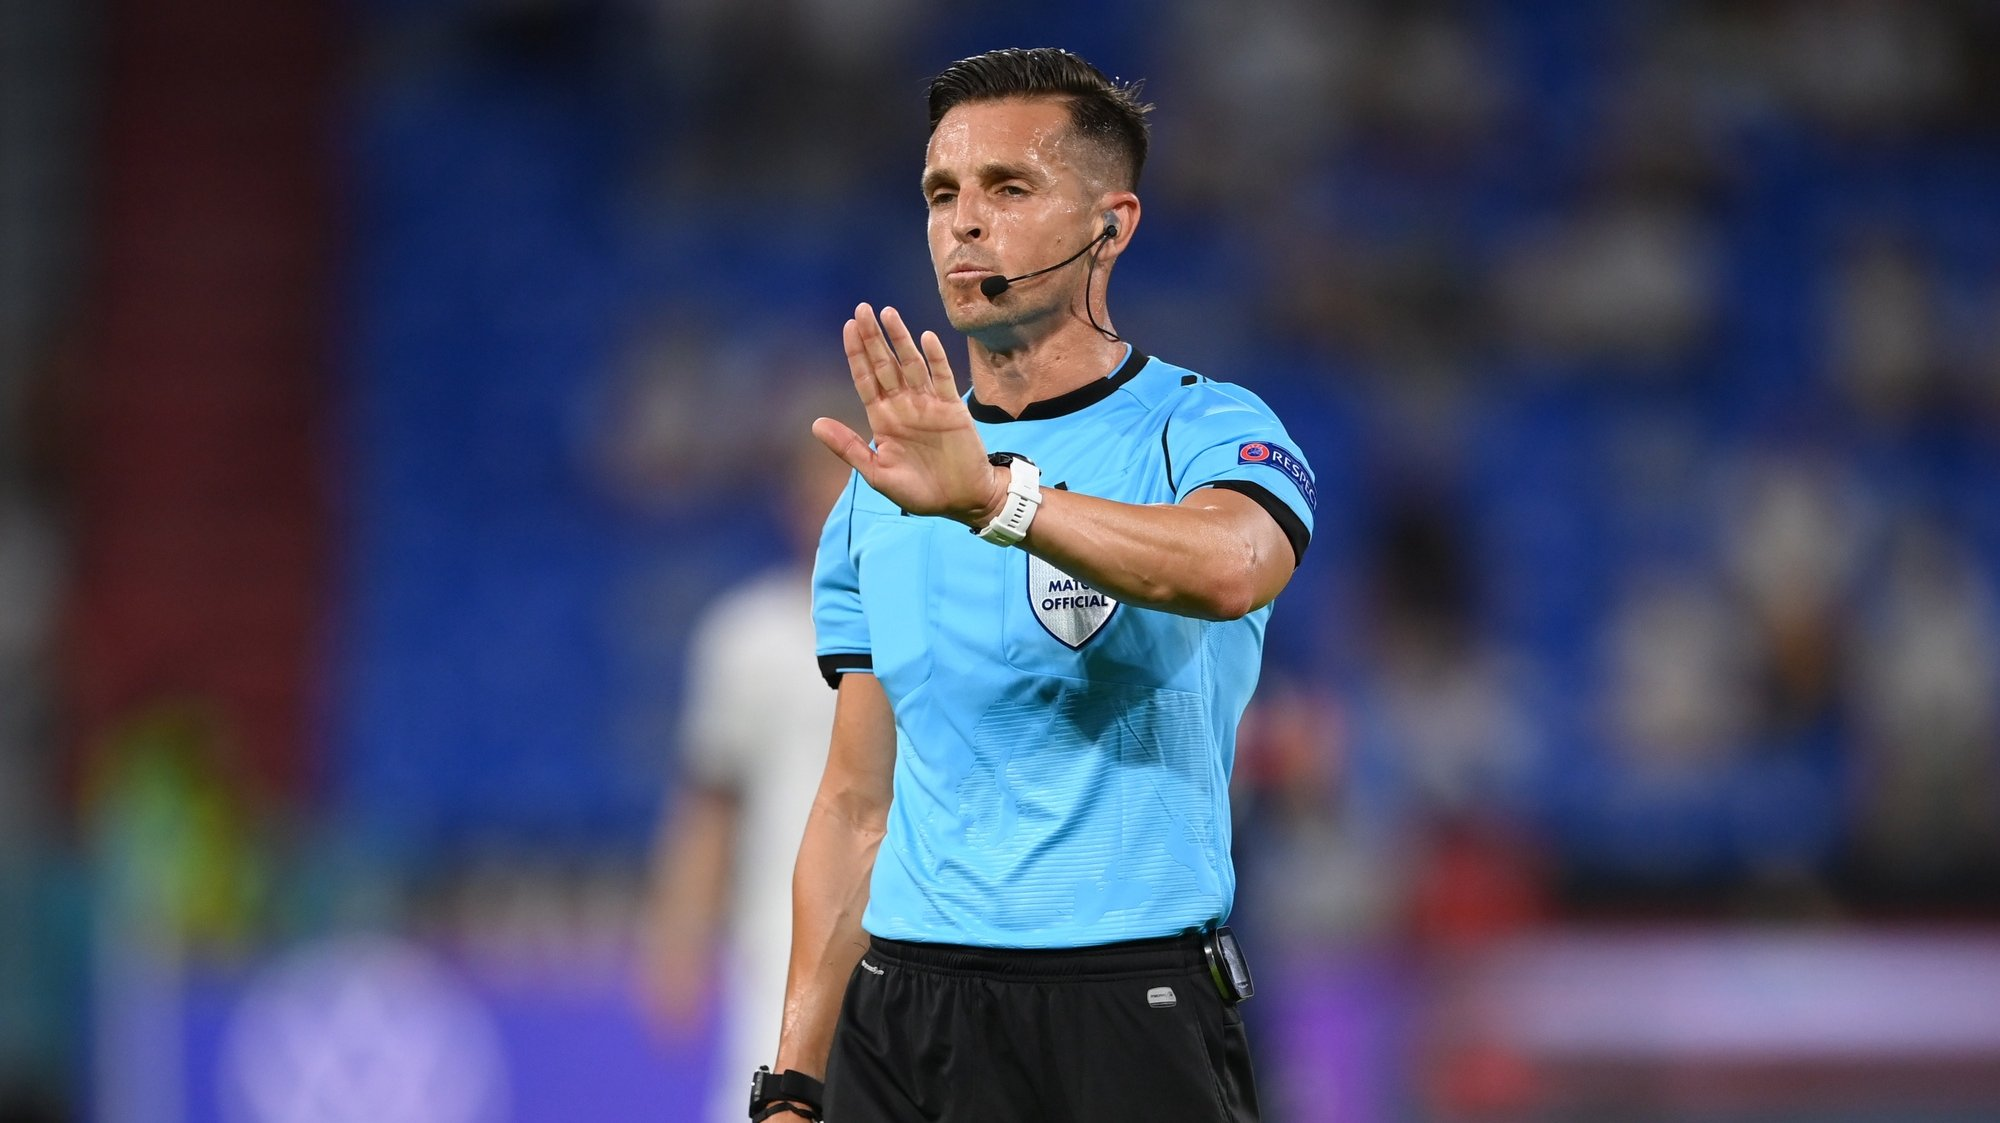 epa09274558 Spanish referee Carlos del Cerro Grande reacts during the UEFA EURO 2020 group F preliminary round soccer match between France and Germany in Munich, Germany, 15 June 2021.  EPA/Matthias Hangst / POOL (RESTRICTIONS: For editorial news reporting purposes only. Images must appear as still images and must not emulate match action video footage. Photographs published in online publications shall have an interval of at least 20 seconds between the posting.)